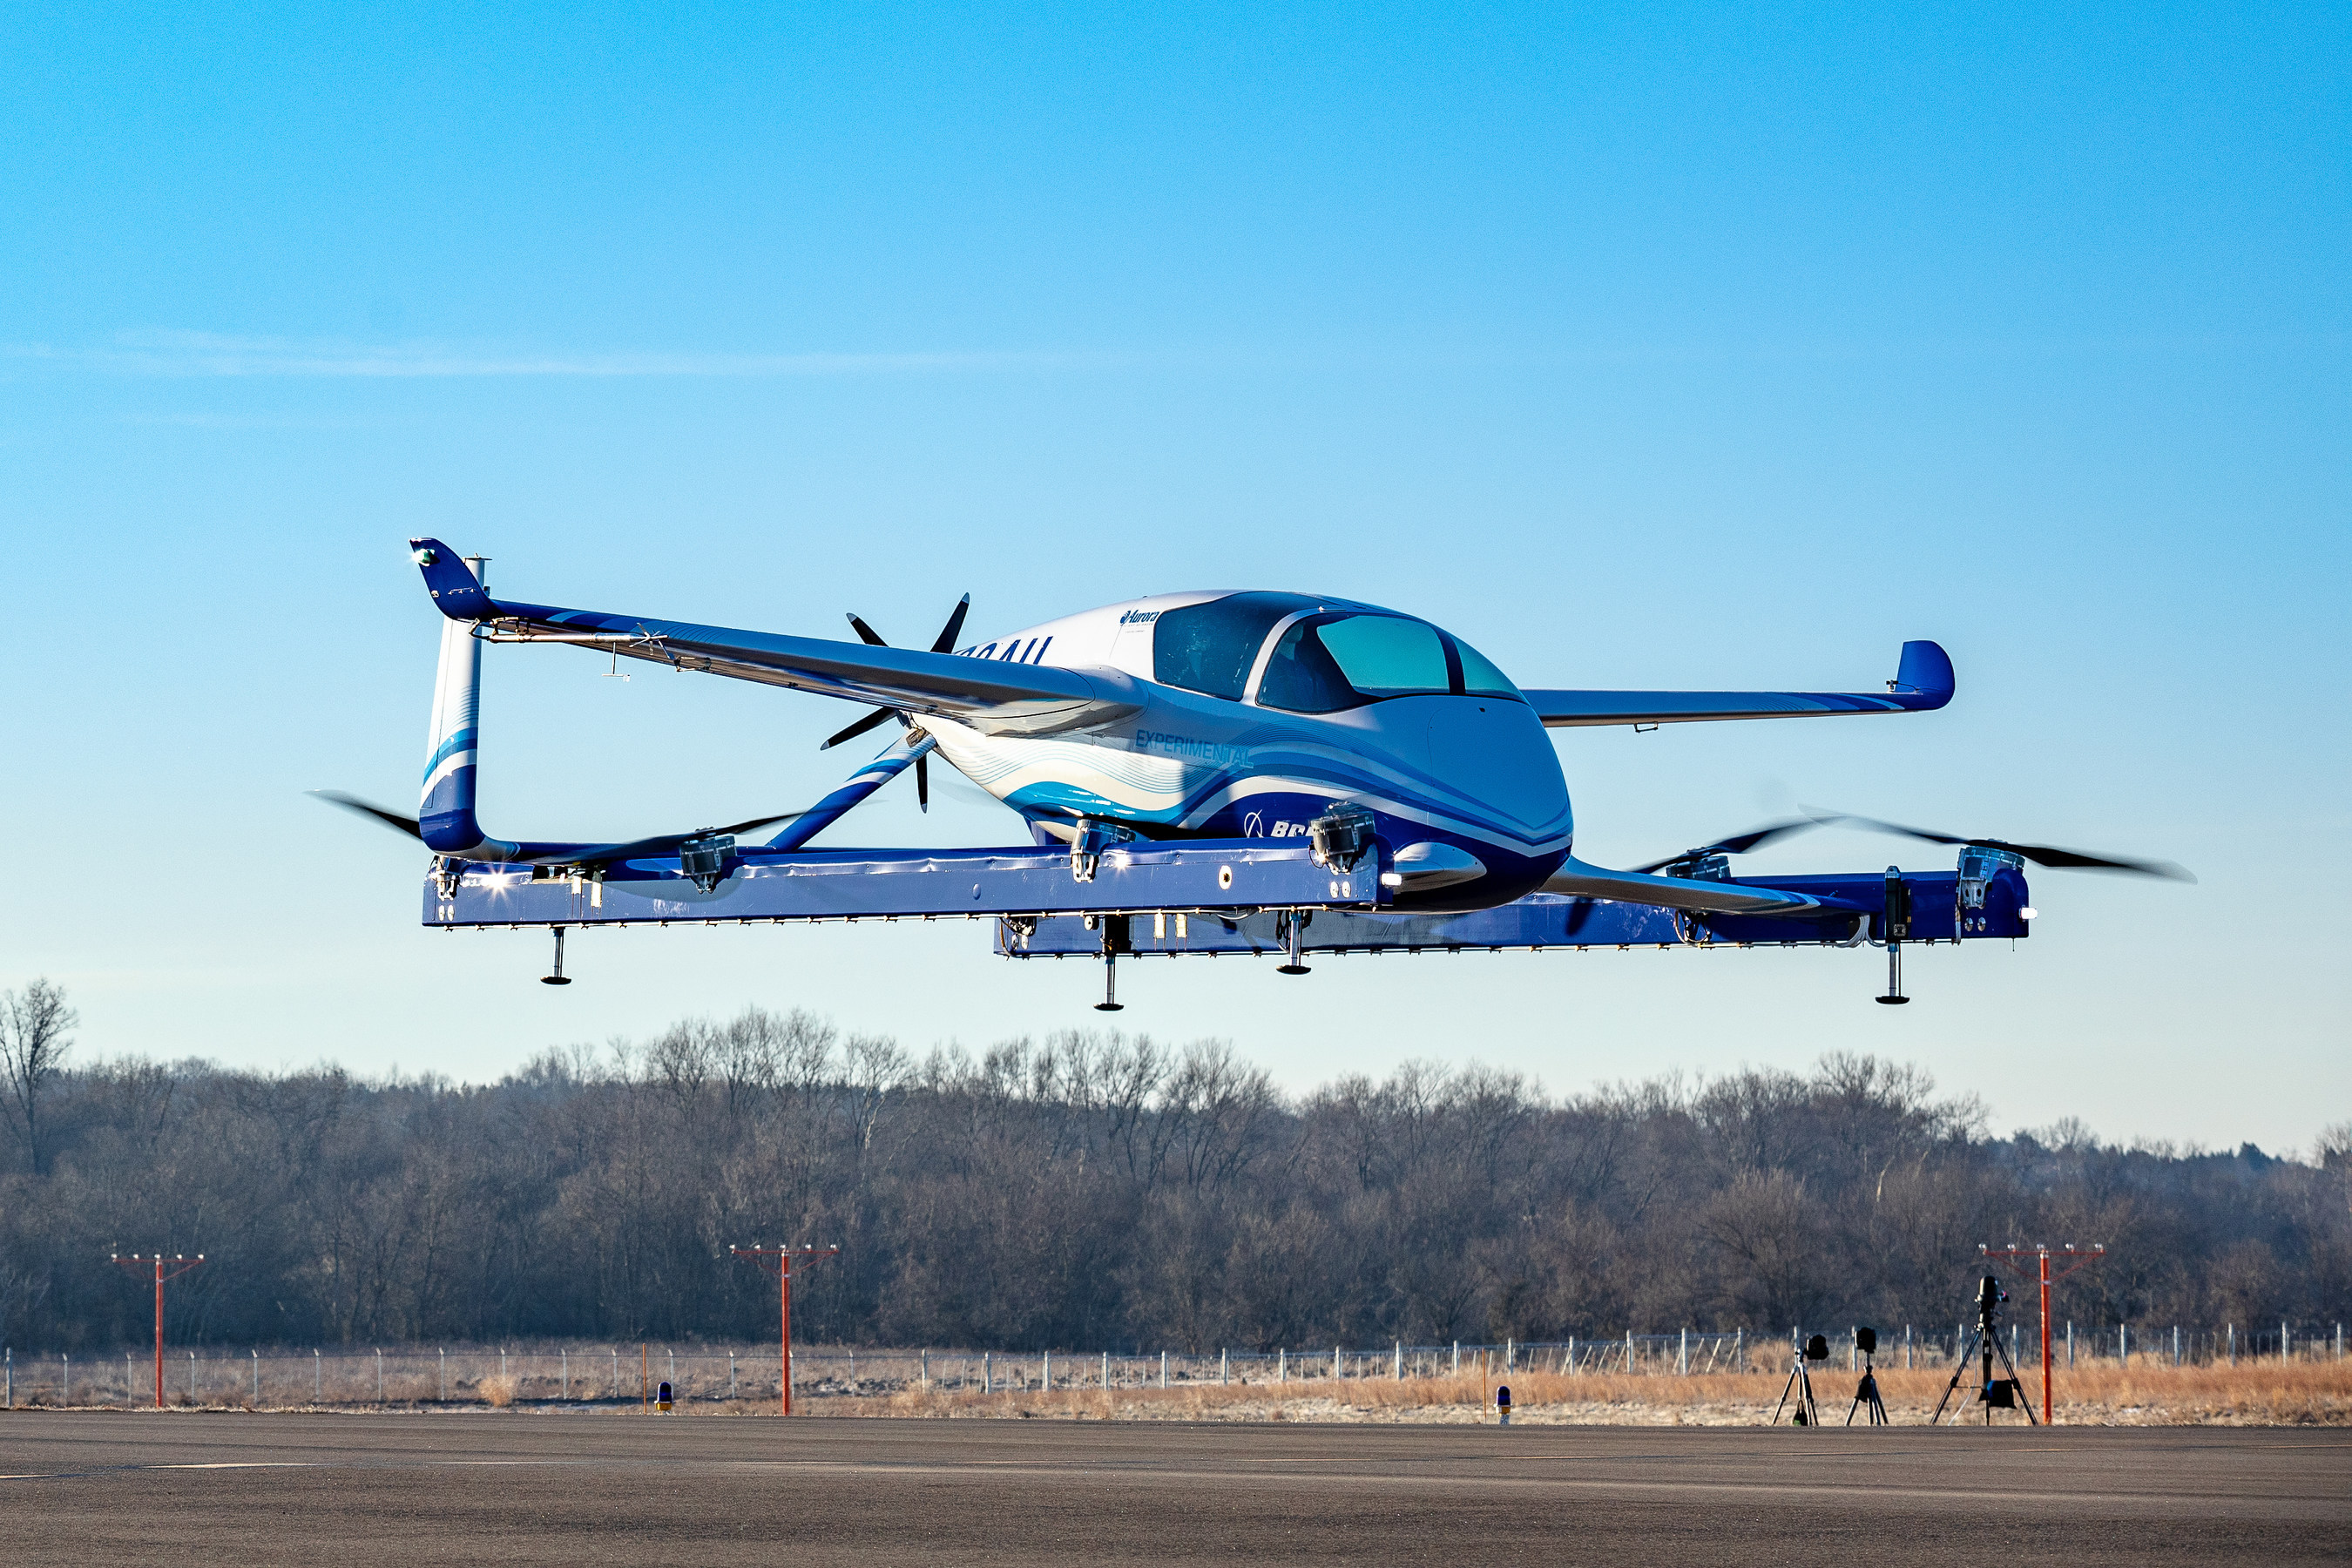 This new box full of sensors could help more flying machines get off the ground